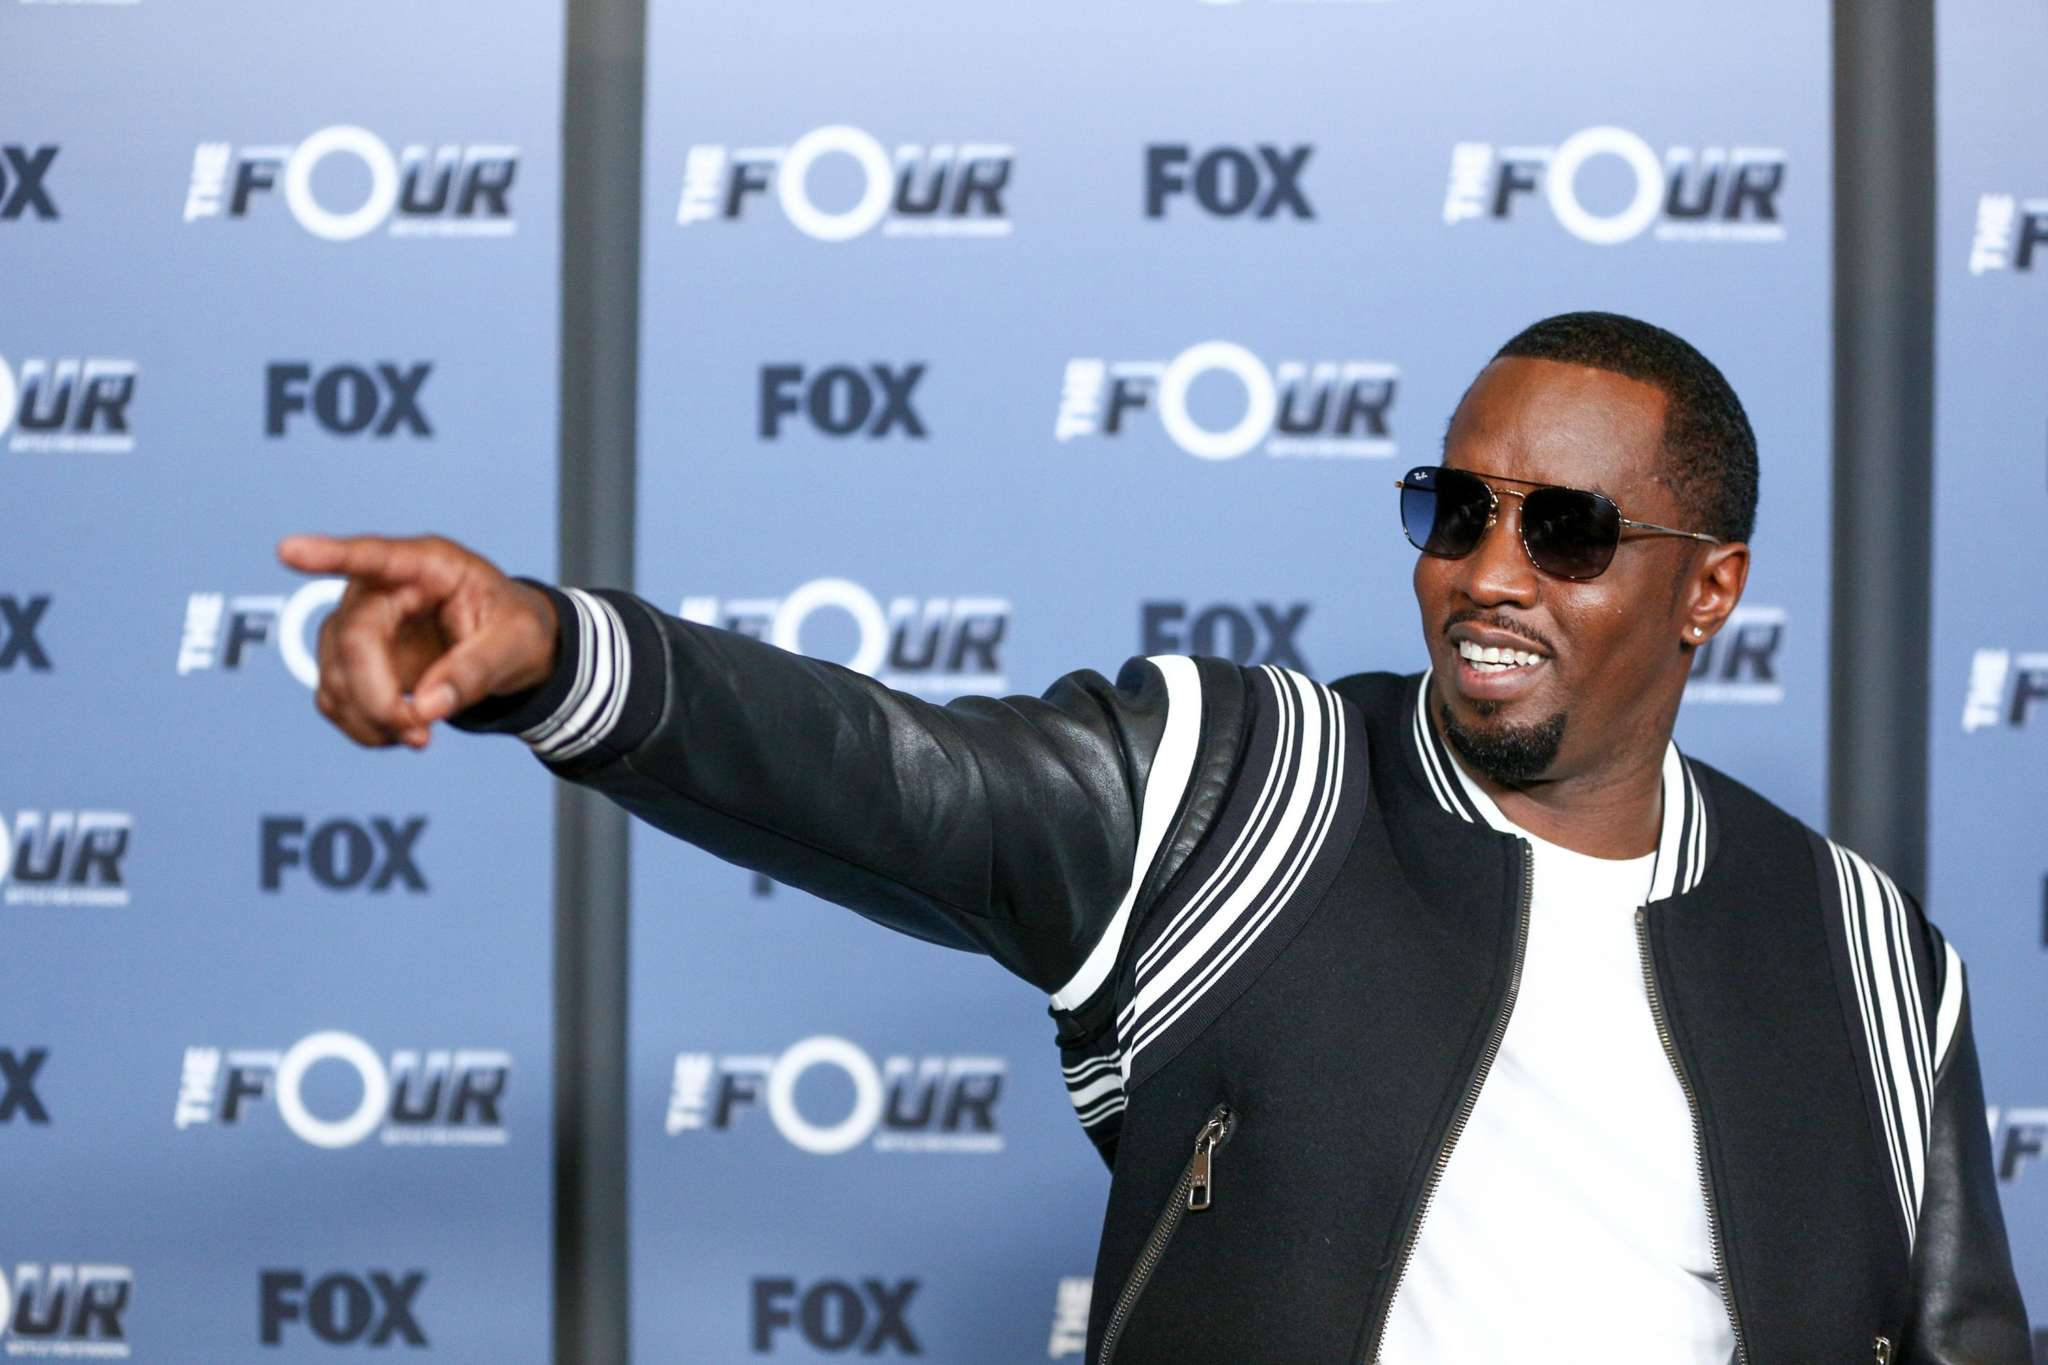 Diddy's Latest Video In Which He's Dancing Has Fans Saying He Still Has The Moves